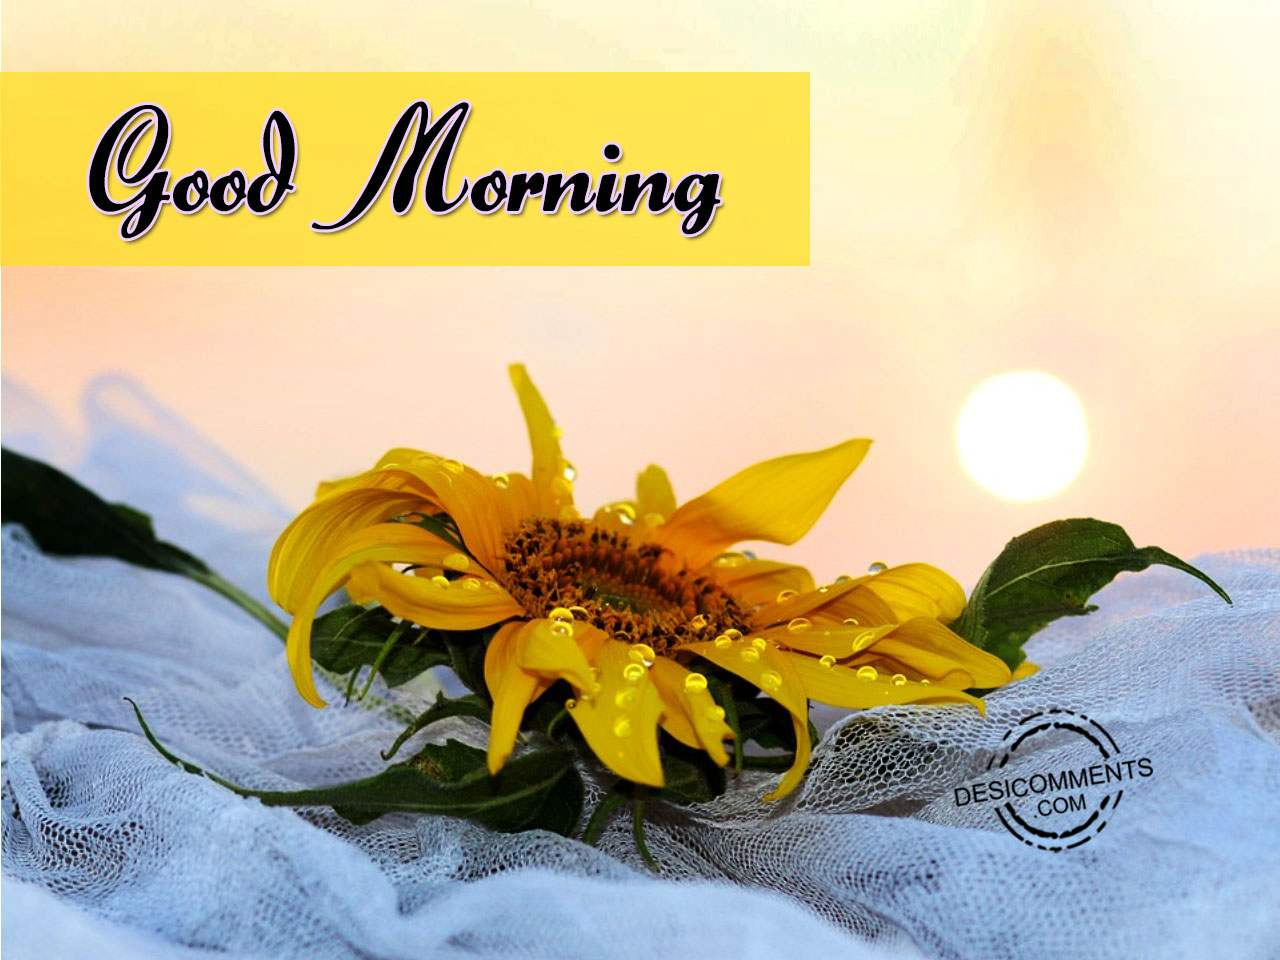 Image Of Good Morning Have A Fabulous Day Desicomments